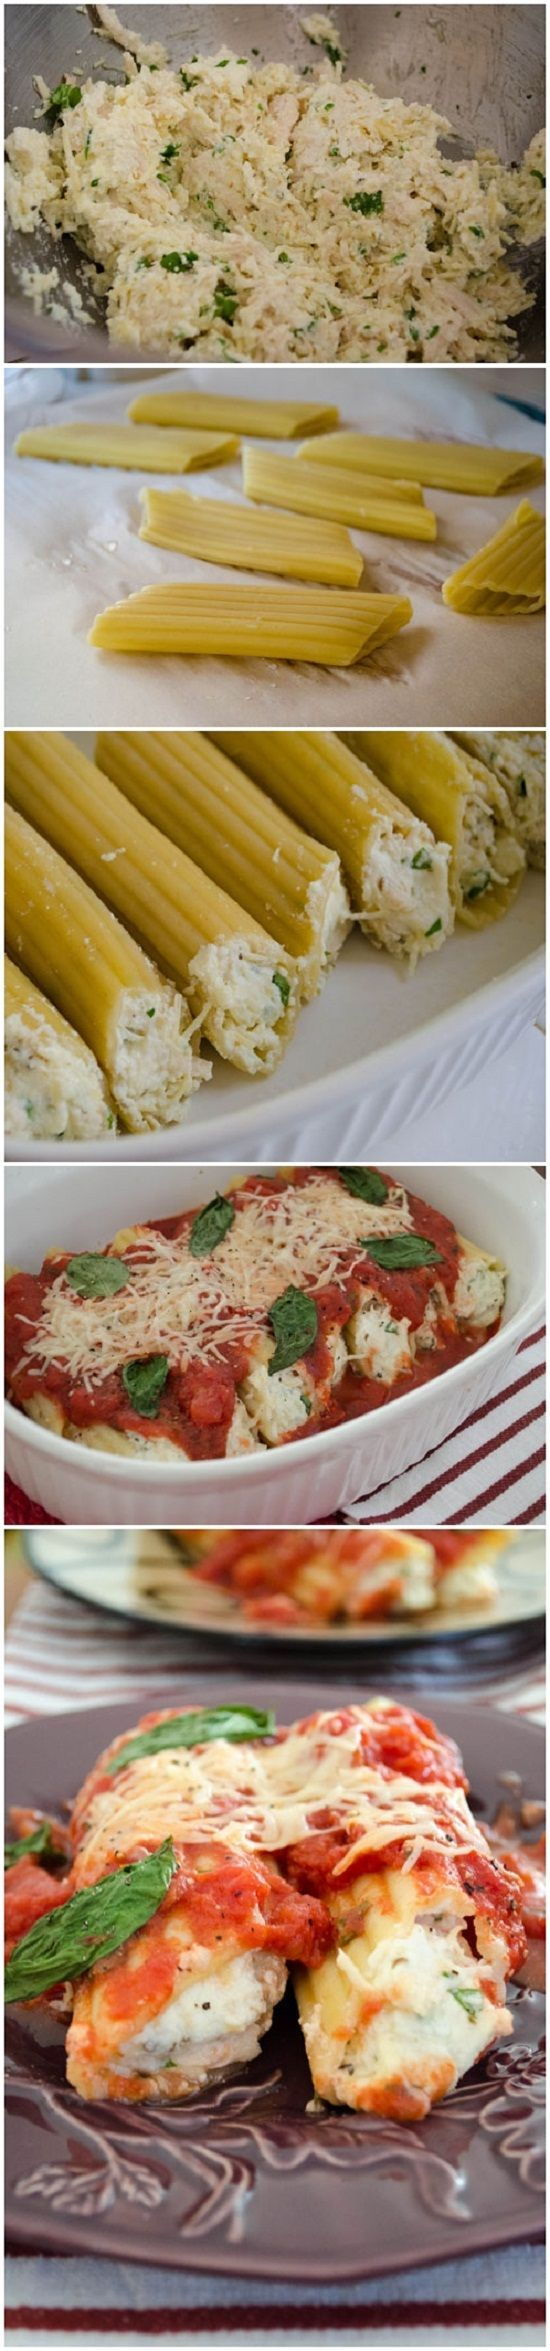 Parmesan Chicken Manicotti. Such a fun spin on manicotti instead of sausage. #pastafoodrecipes